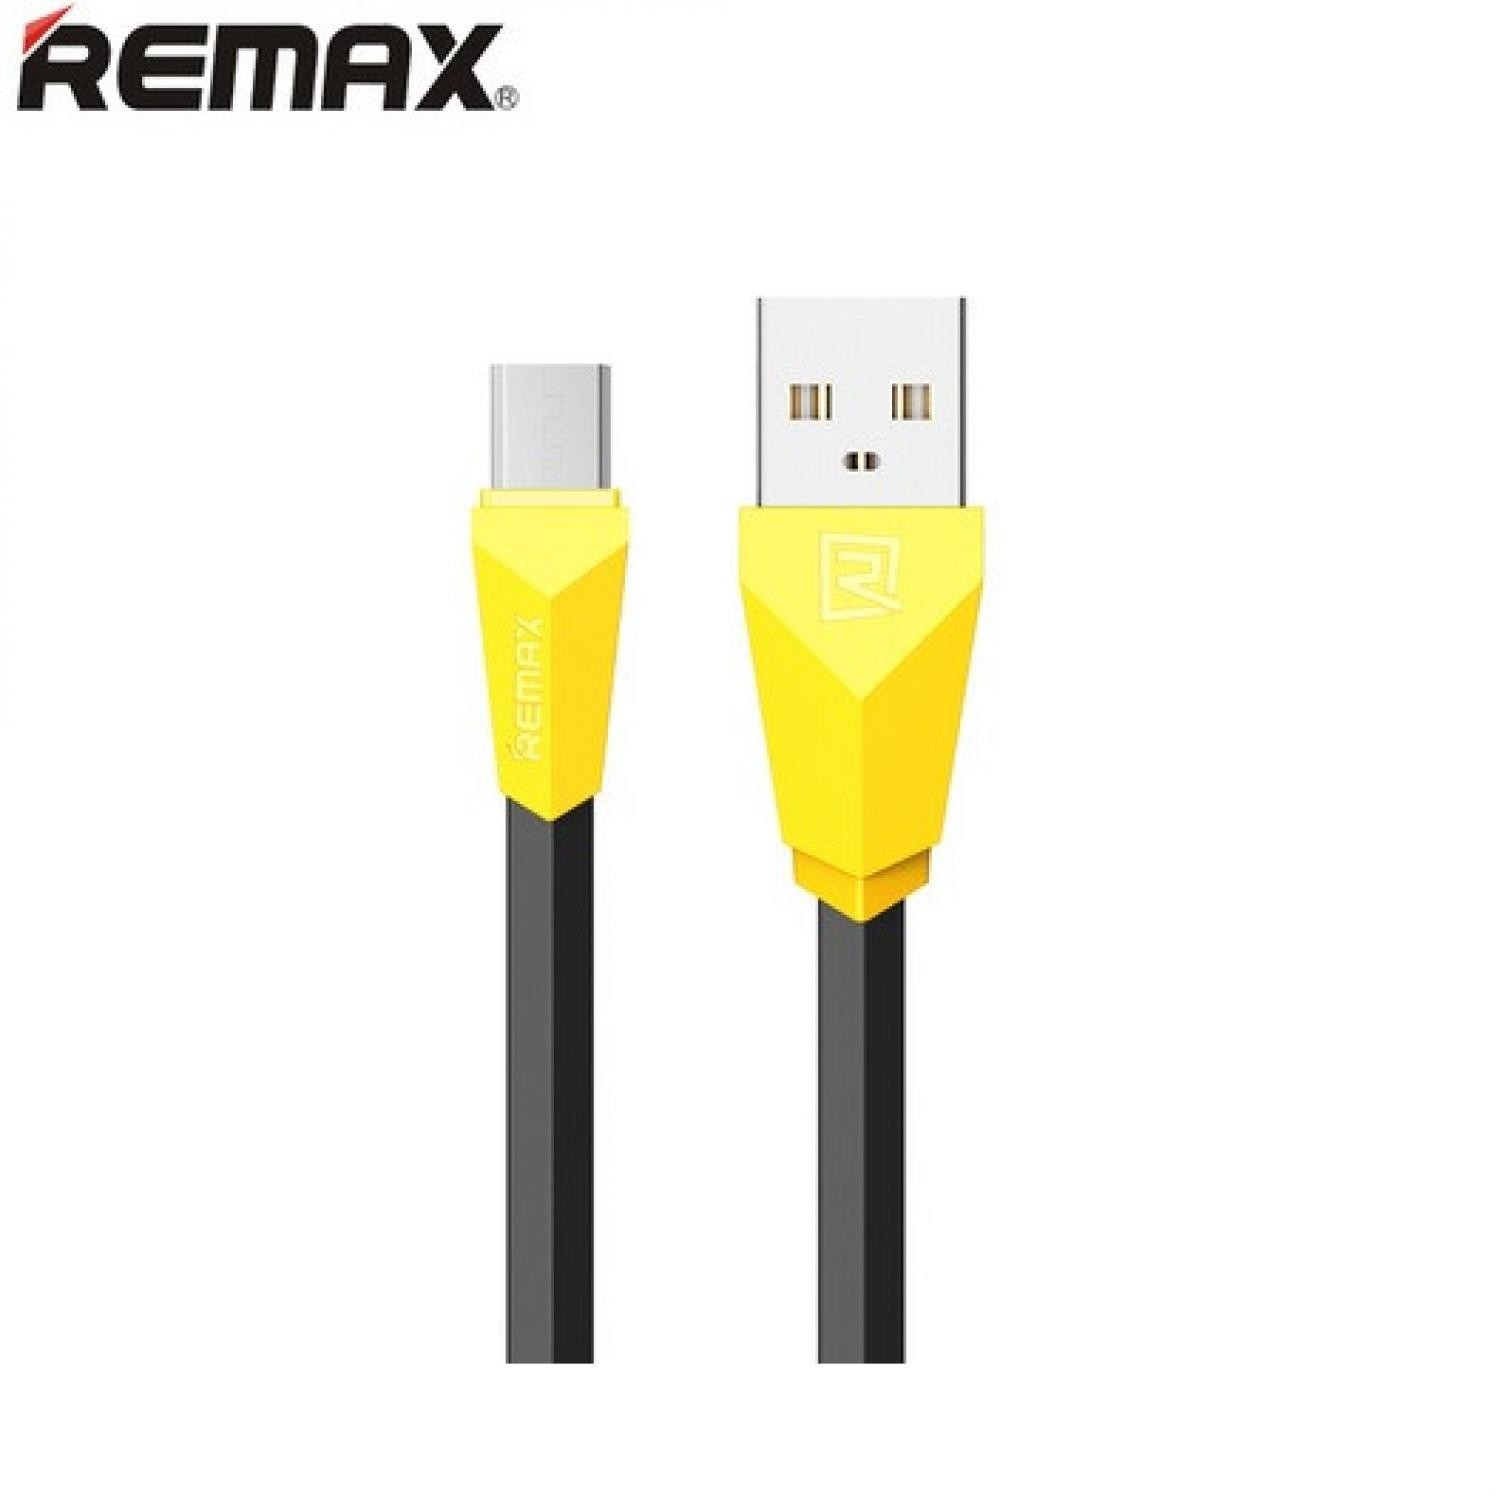 Remax Aliens Micro USB Cable for Smartphone - RC-030 (Black & Yellow)